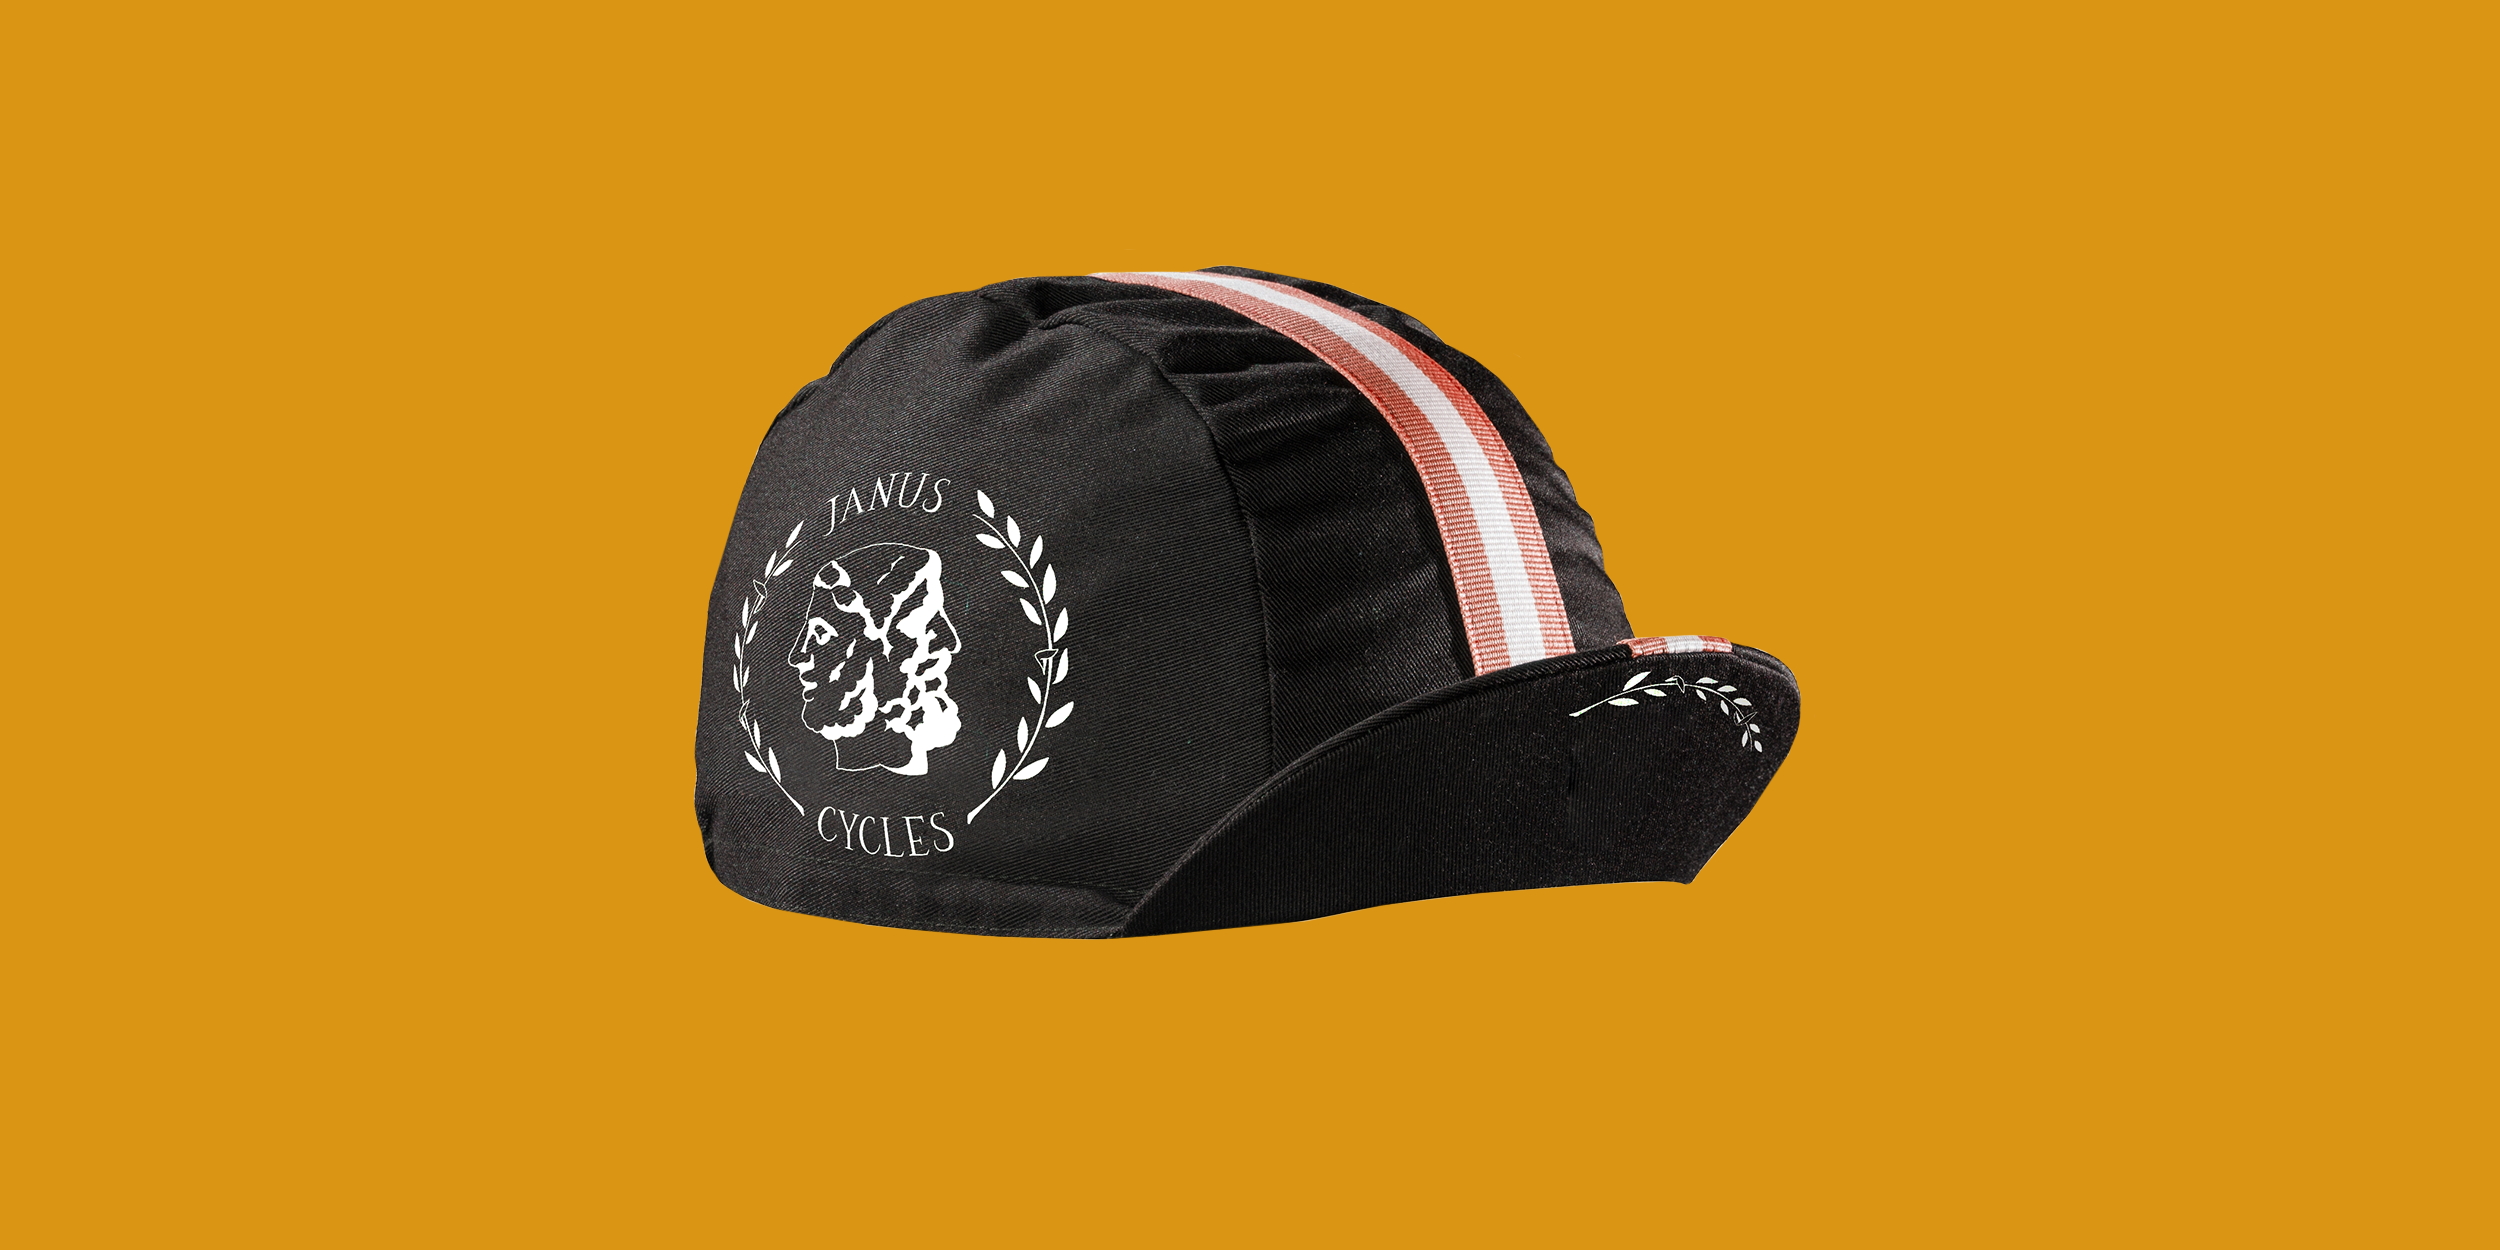 janus cycles_hat.png